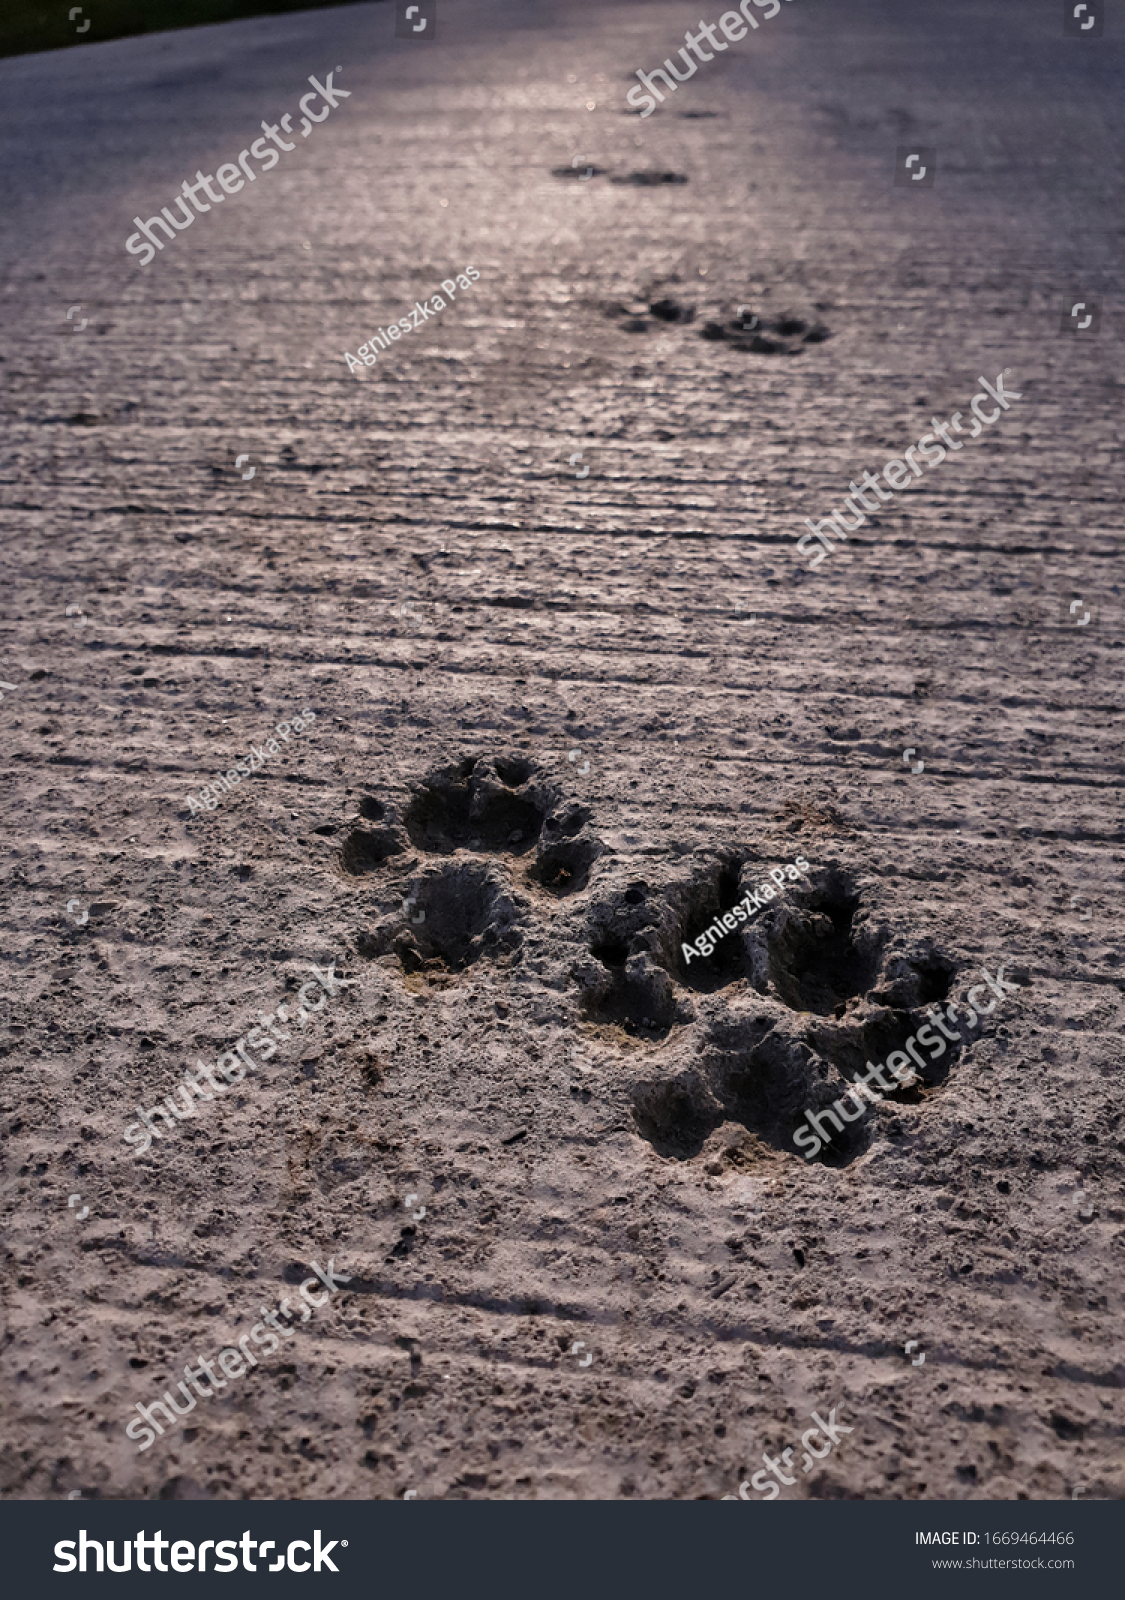 stock-photo-a-closeup-view-of-dog-footpr